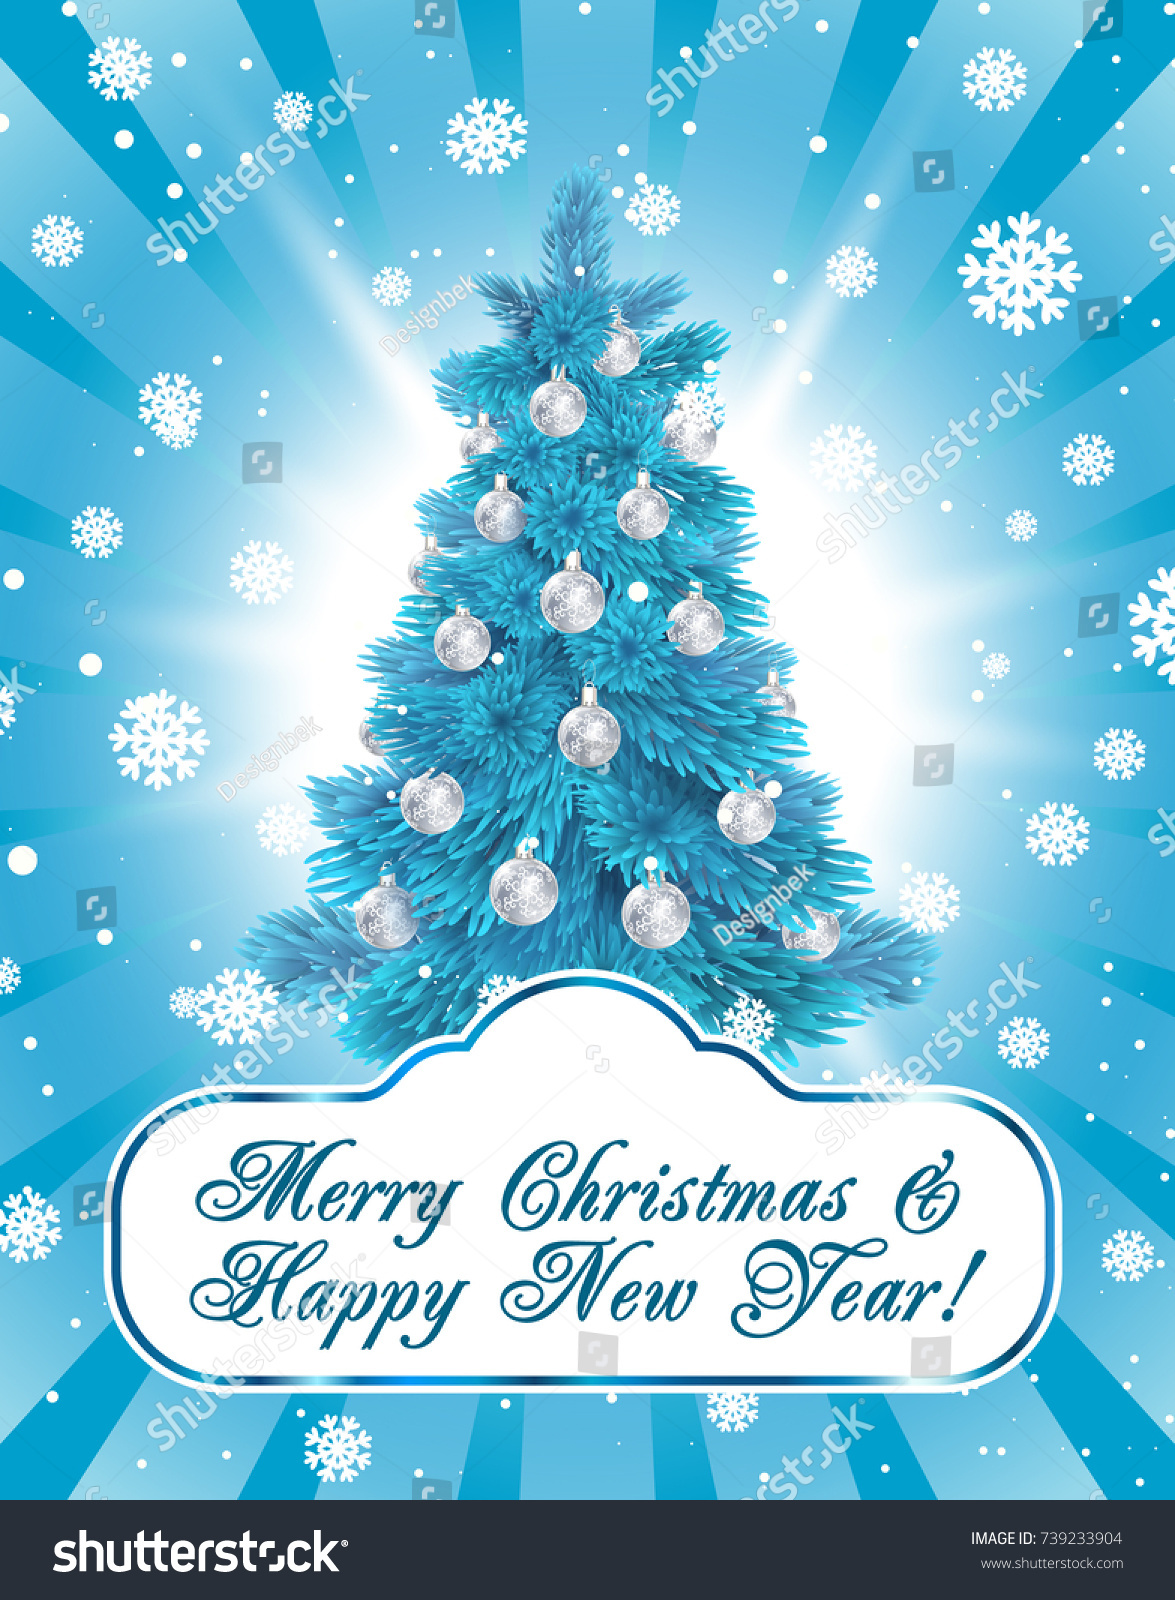 Merry christmas happy new year greeting stock vector 739233904 merry christmas and happy new year greeting card with blue christmas tree on the blue background kristyandbryce Choice Image